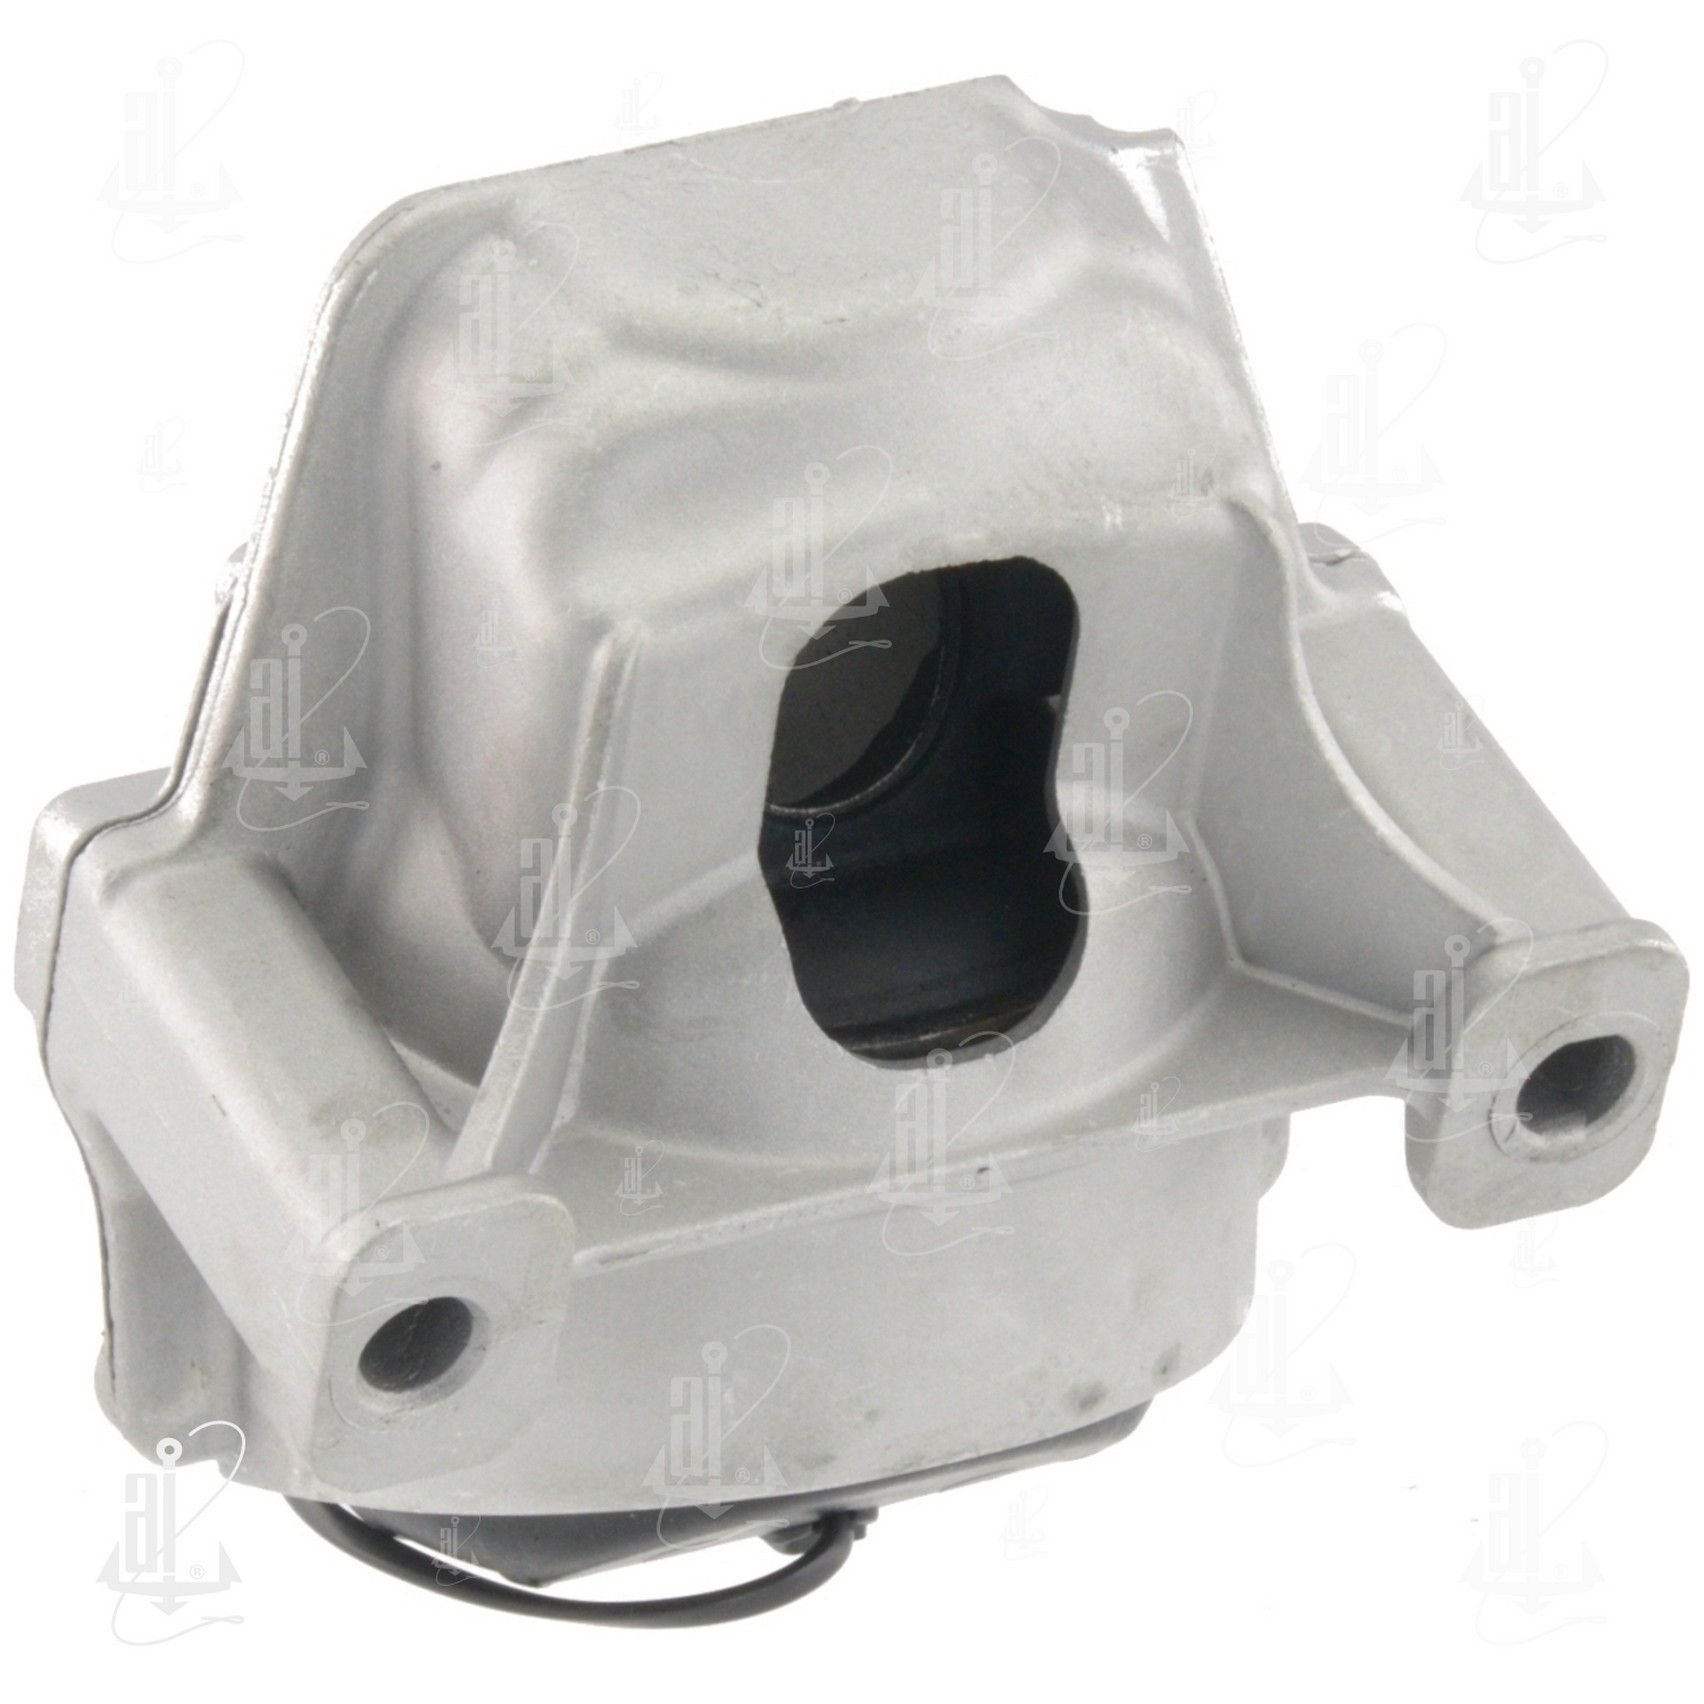 Anchor 8998 Front Right Mount